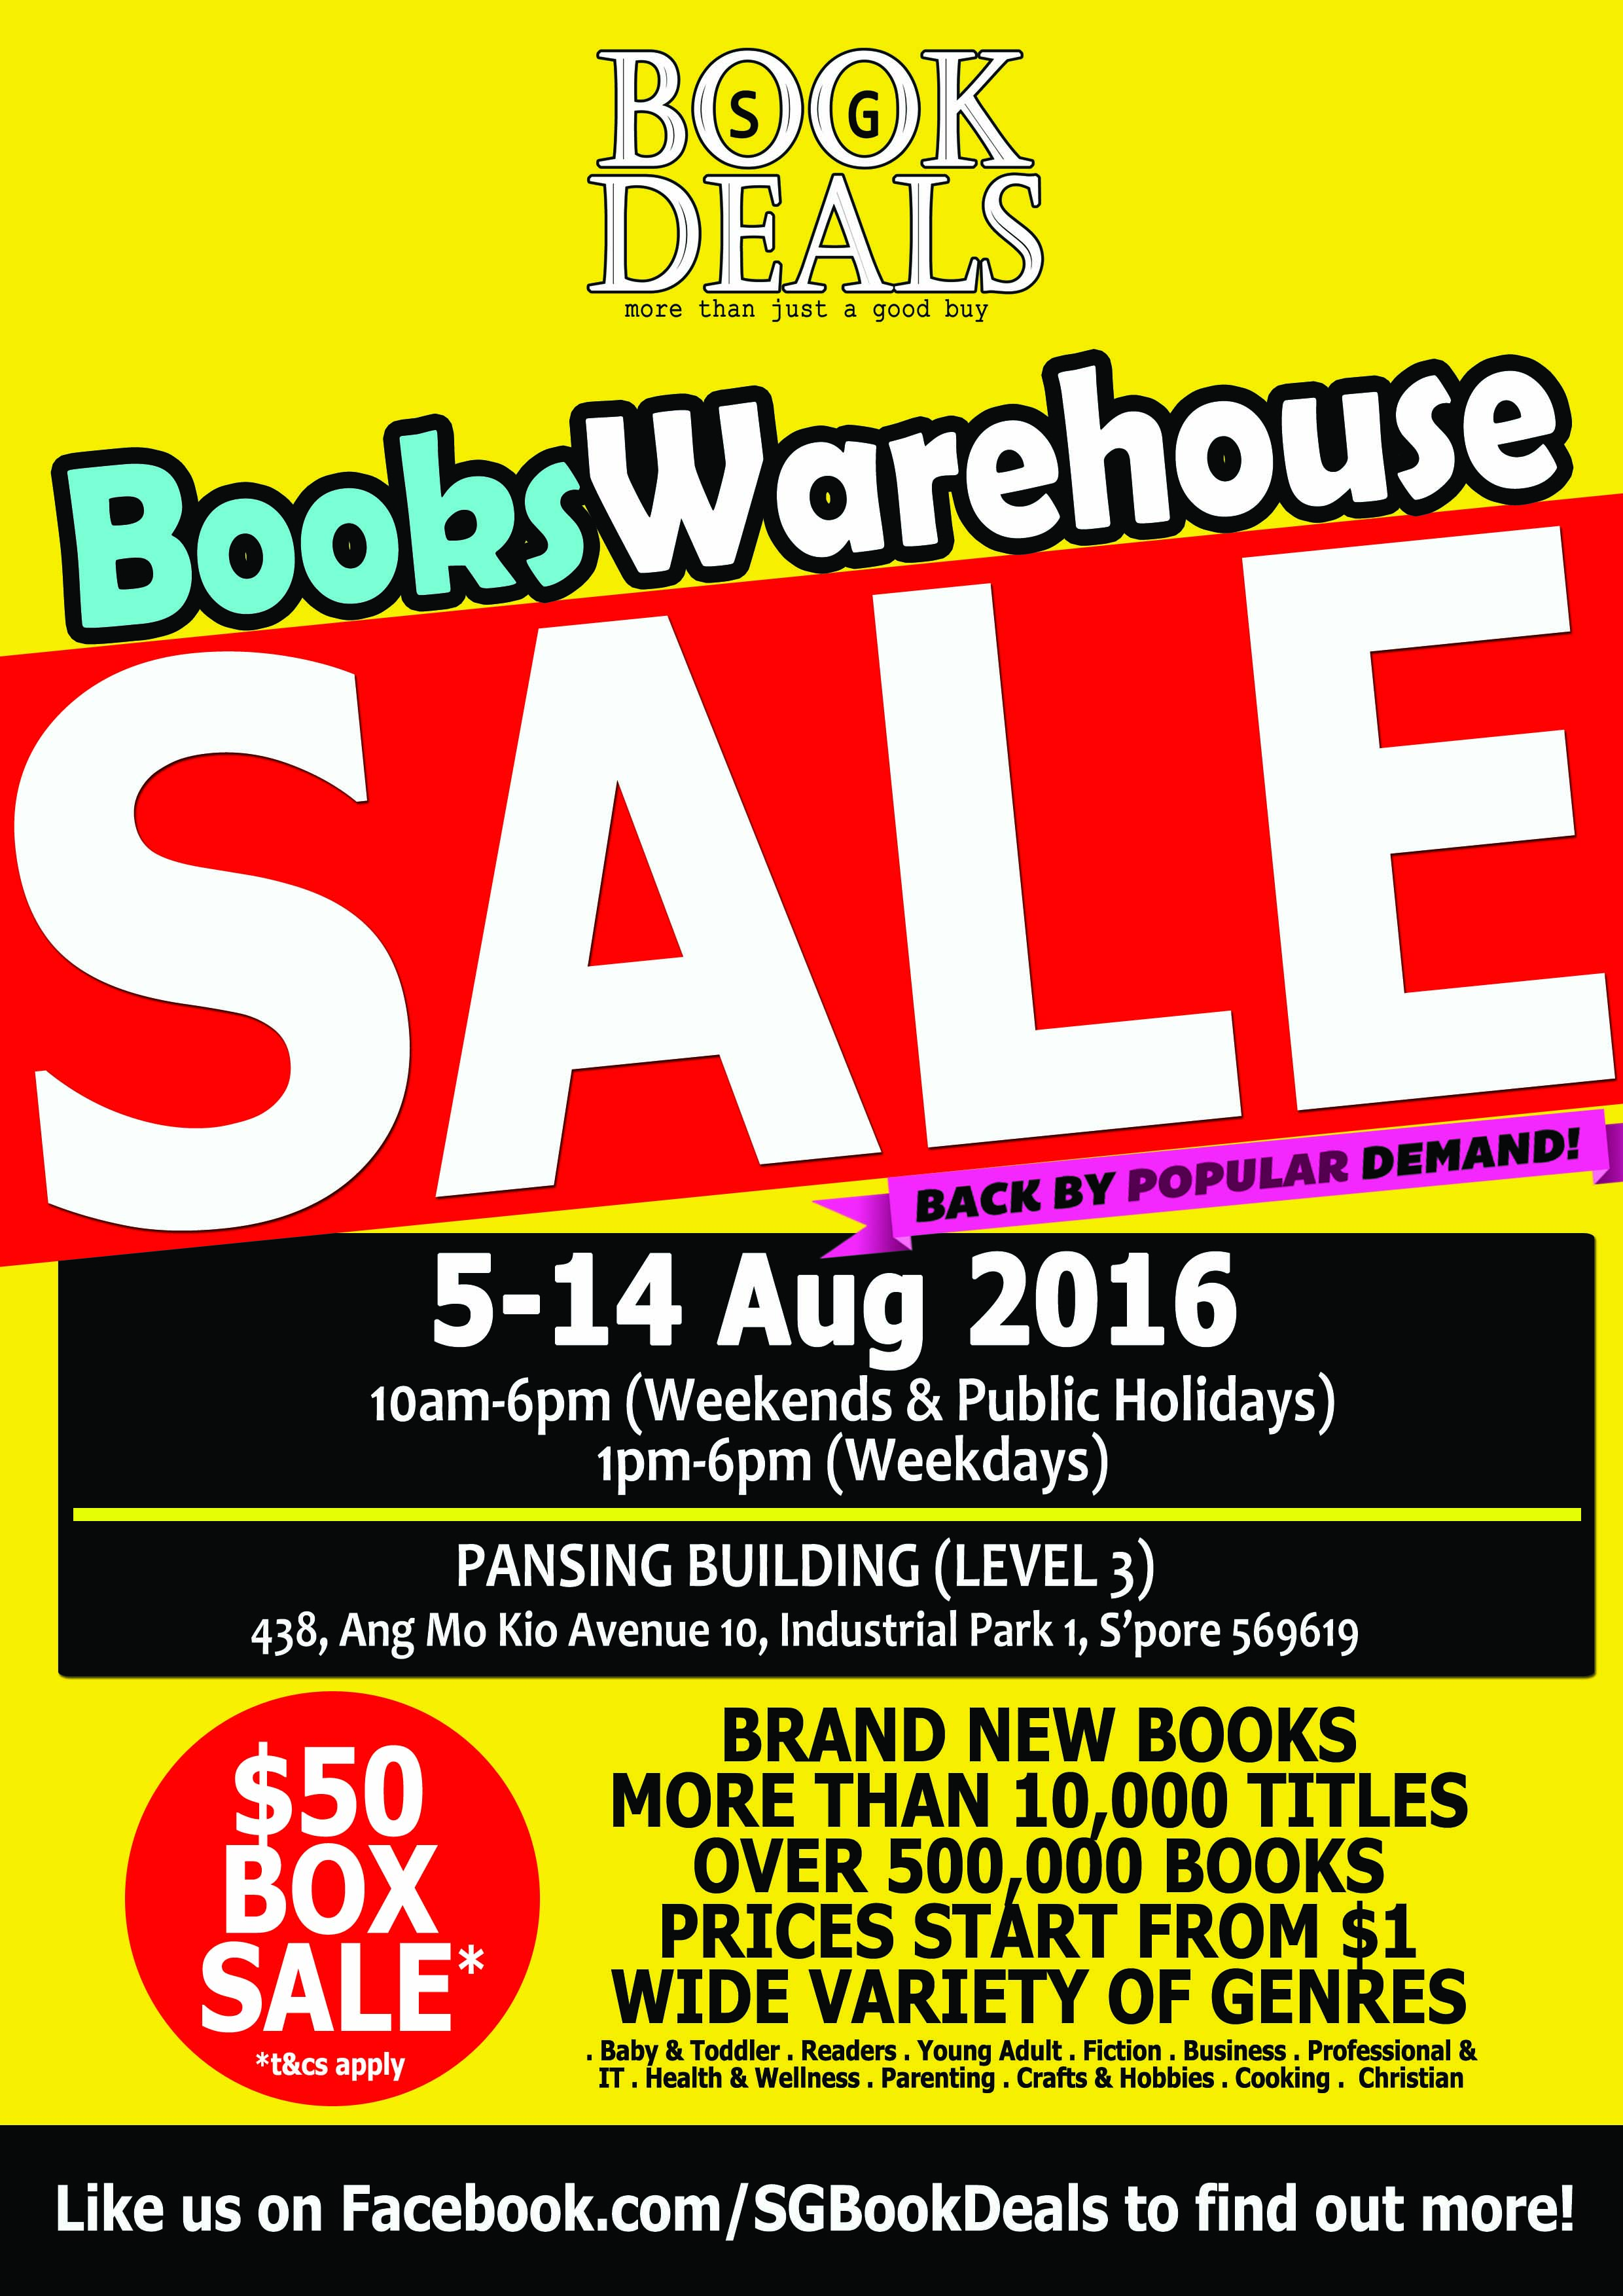 A3 Poster_Books Warehouse Sale3